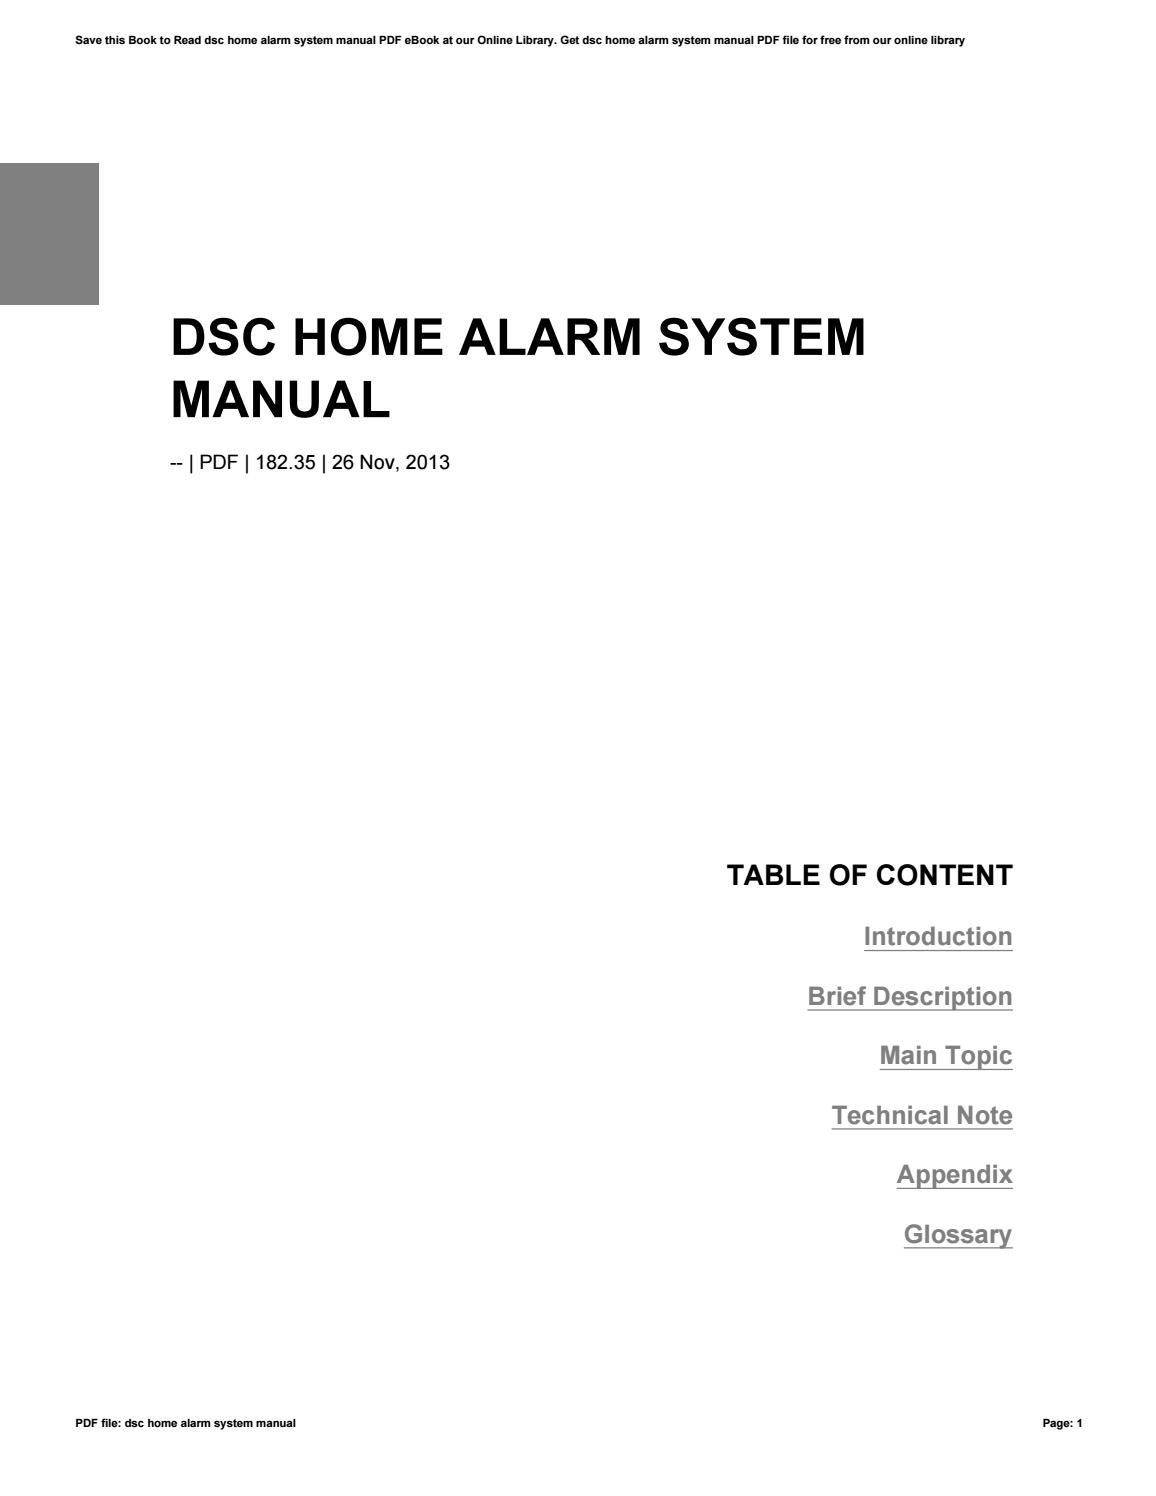 dsc home alarm system manual by n387